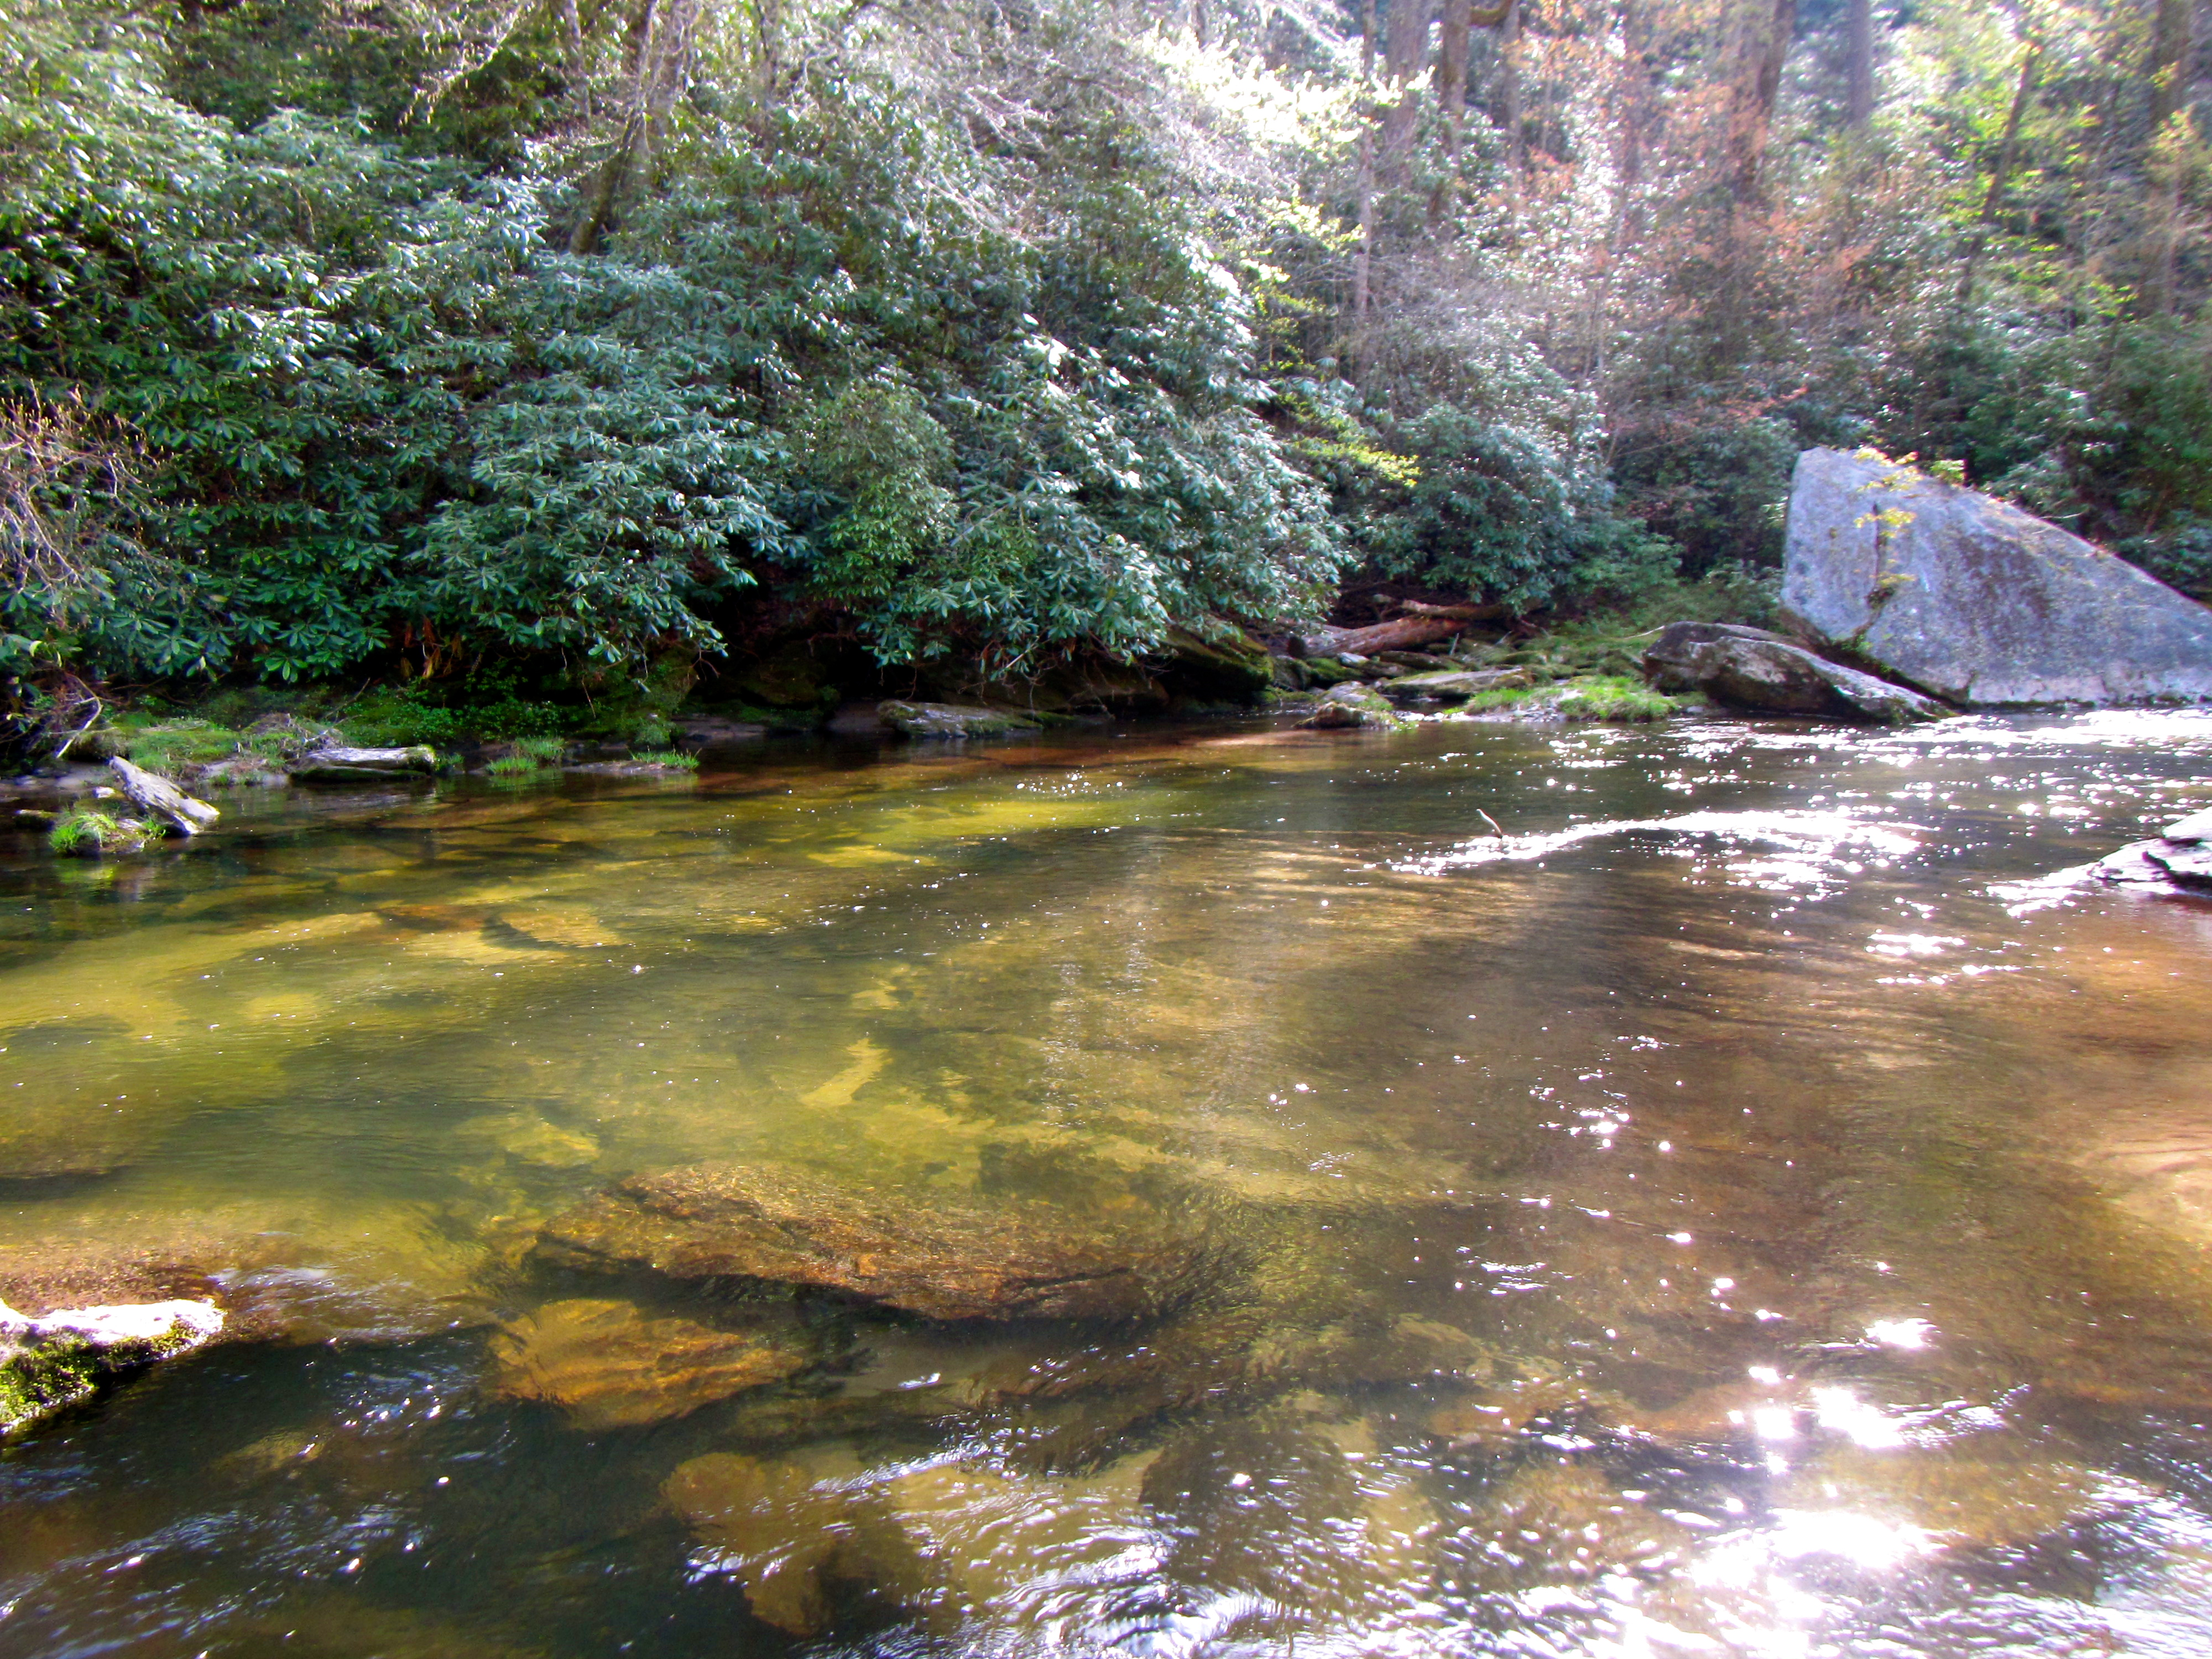 Fly fishing wild brown trout backwater fly fishing for Trout fishing spots near me